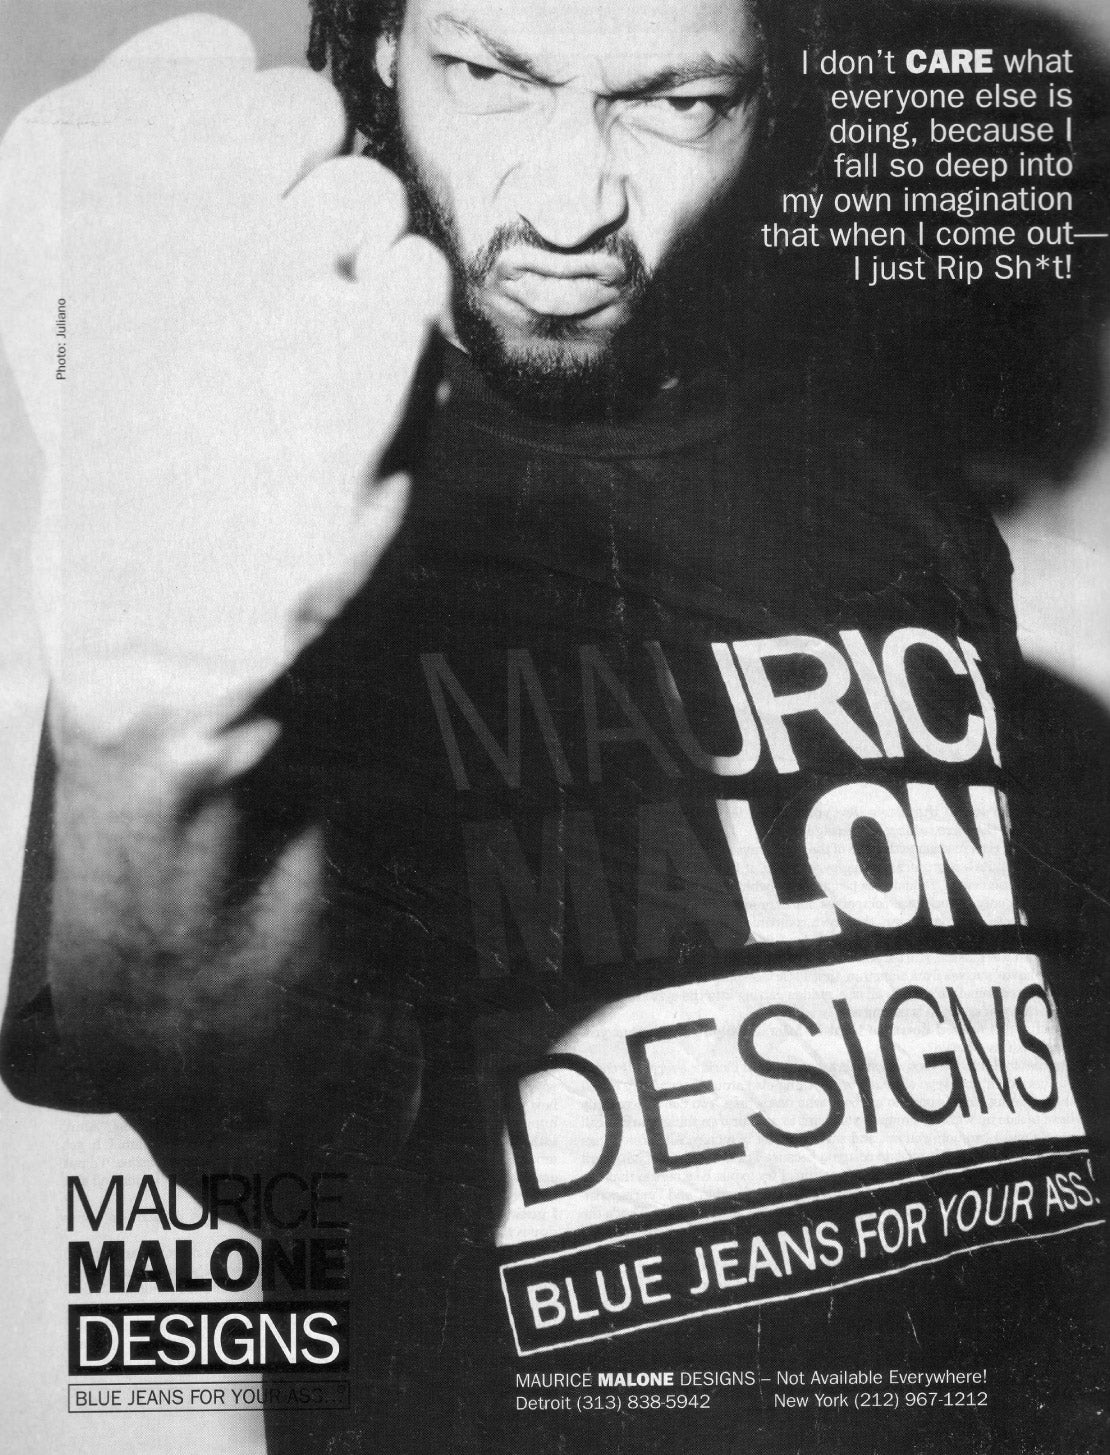 Designer Maurice Malone appears in iconic urban streetwear 90s advertisement